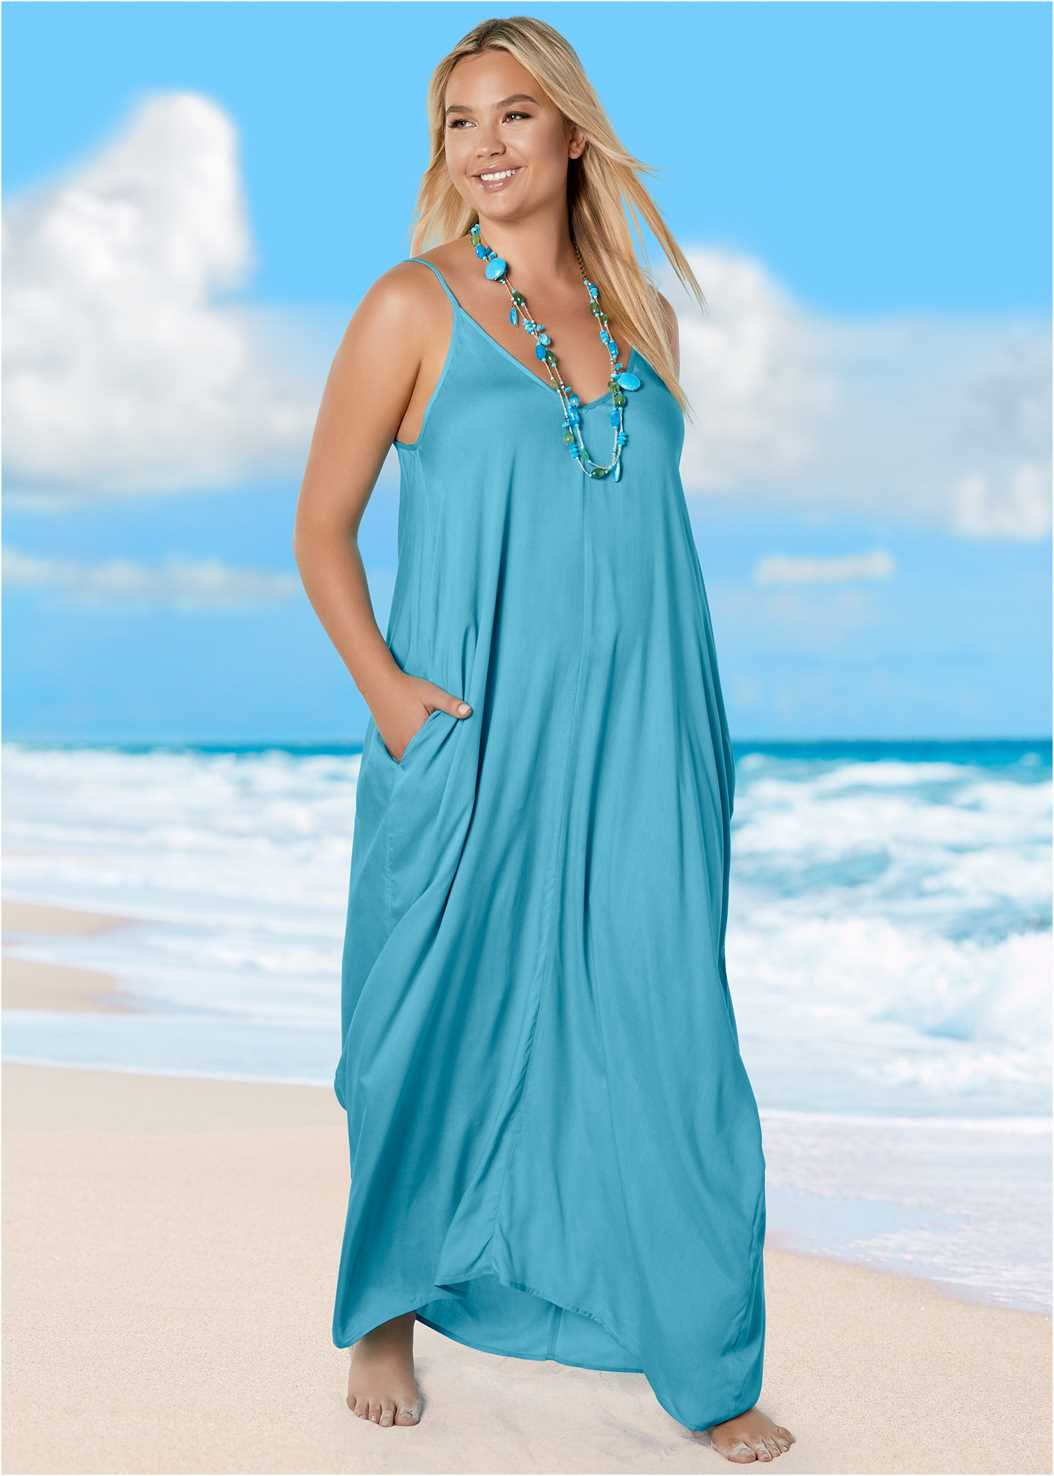 Boho Maxi Dress Cover-Up,Lovely Lift Wrap Bikini Top,High Waist Bottom,Embellished Slides